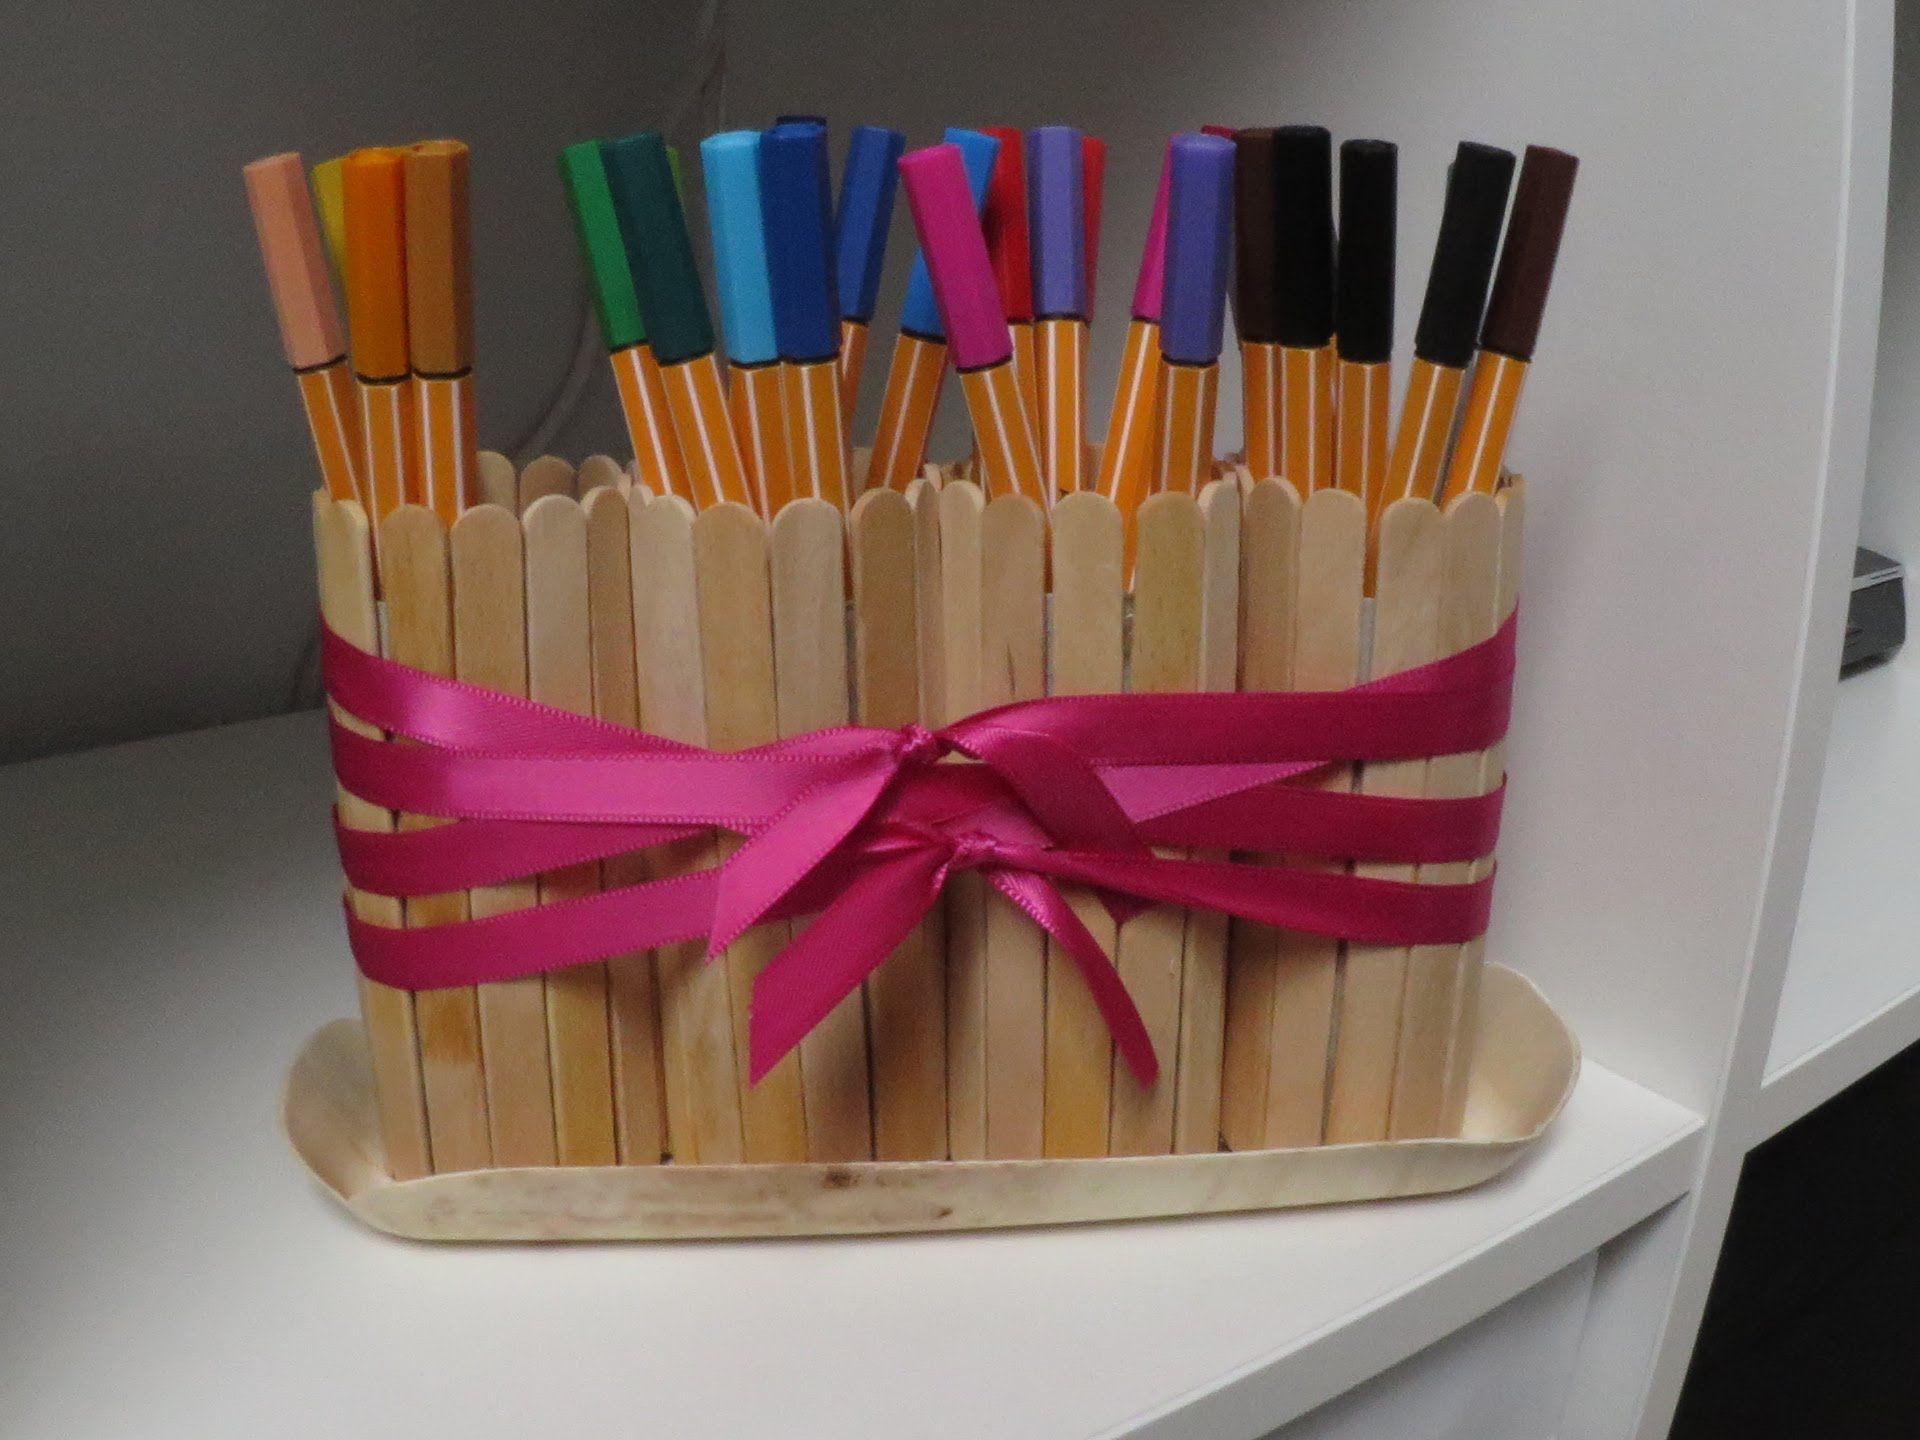 diy upcycling pencil holder pencil case stiftehalter stiftek cher krimskrams. Black Bedroom Furniture Sets. Home Design Ideas